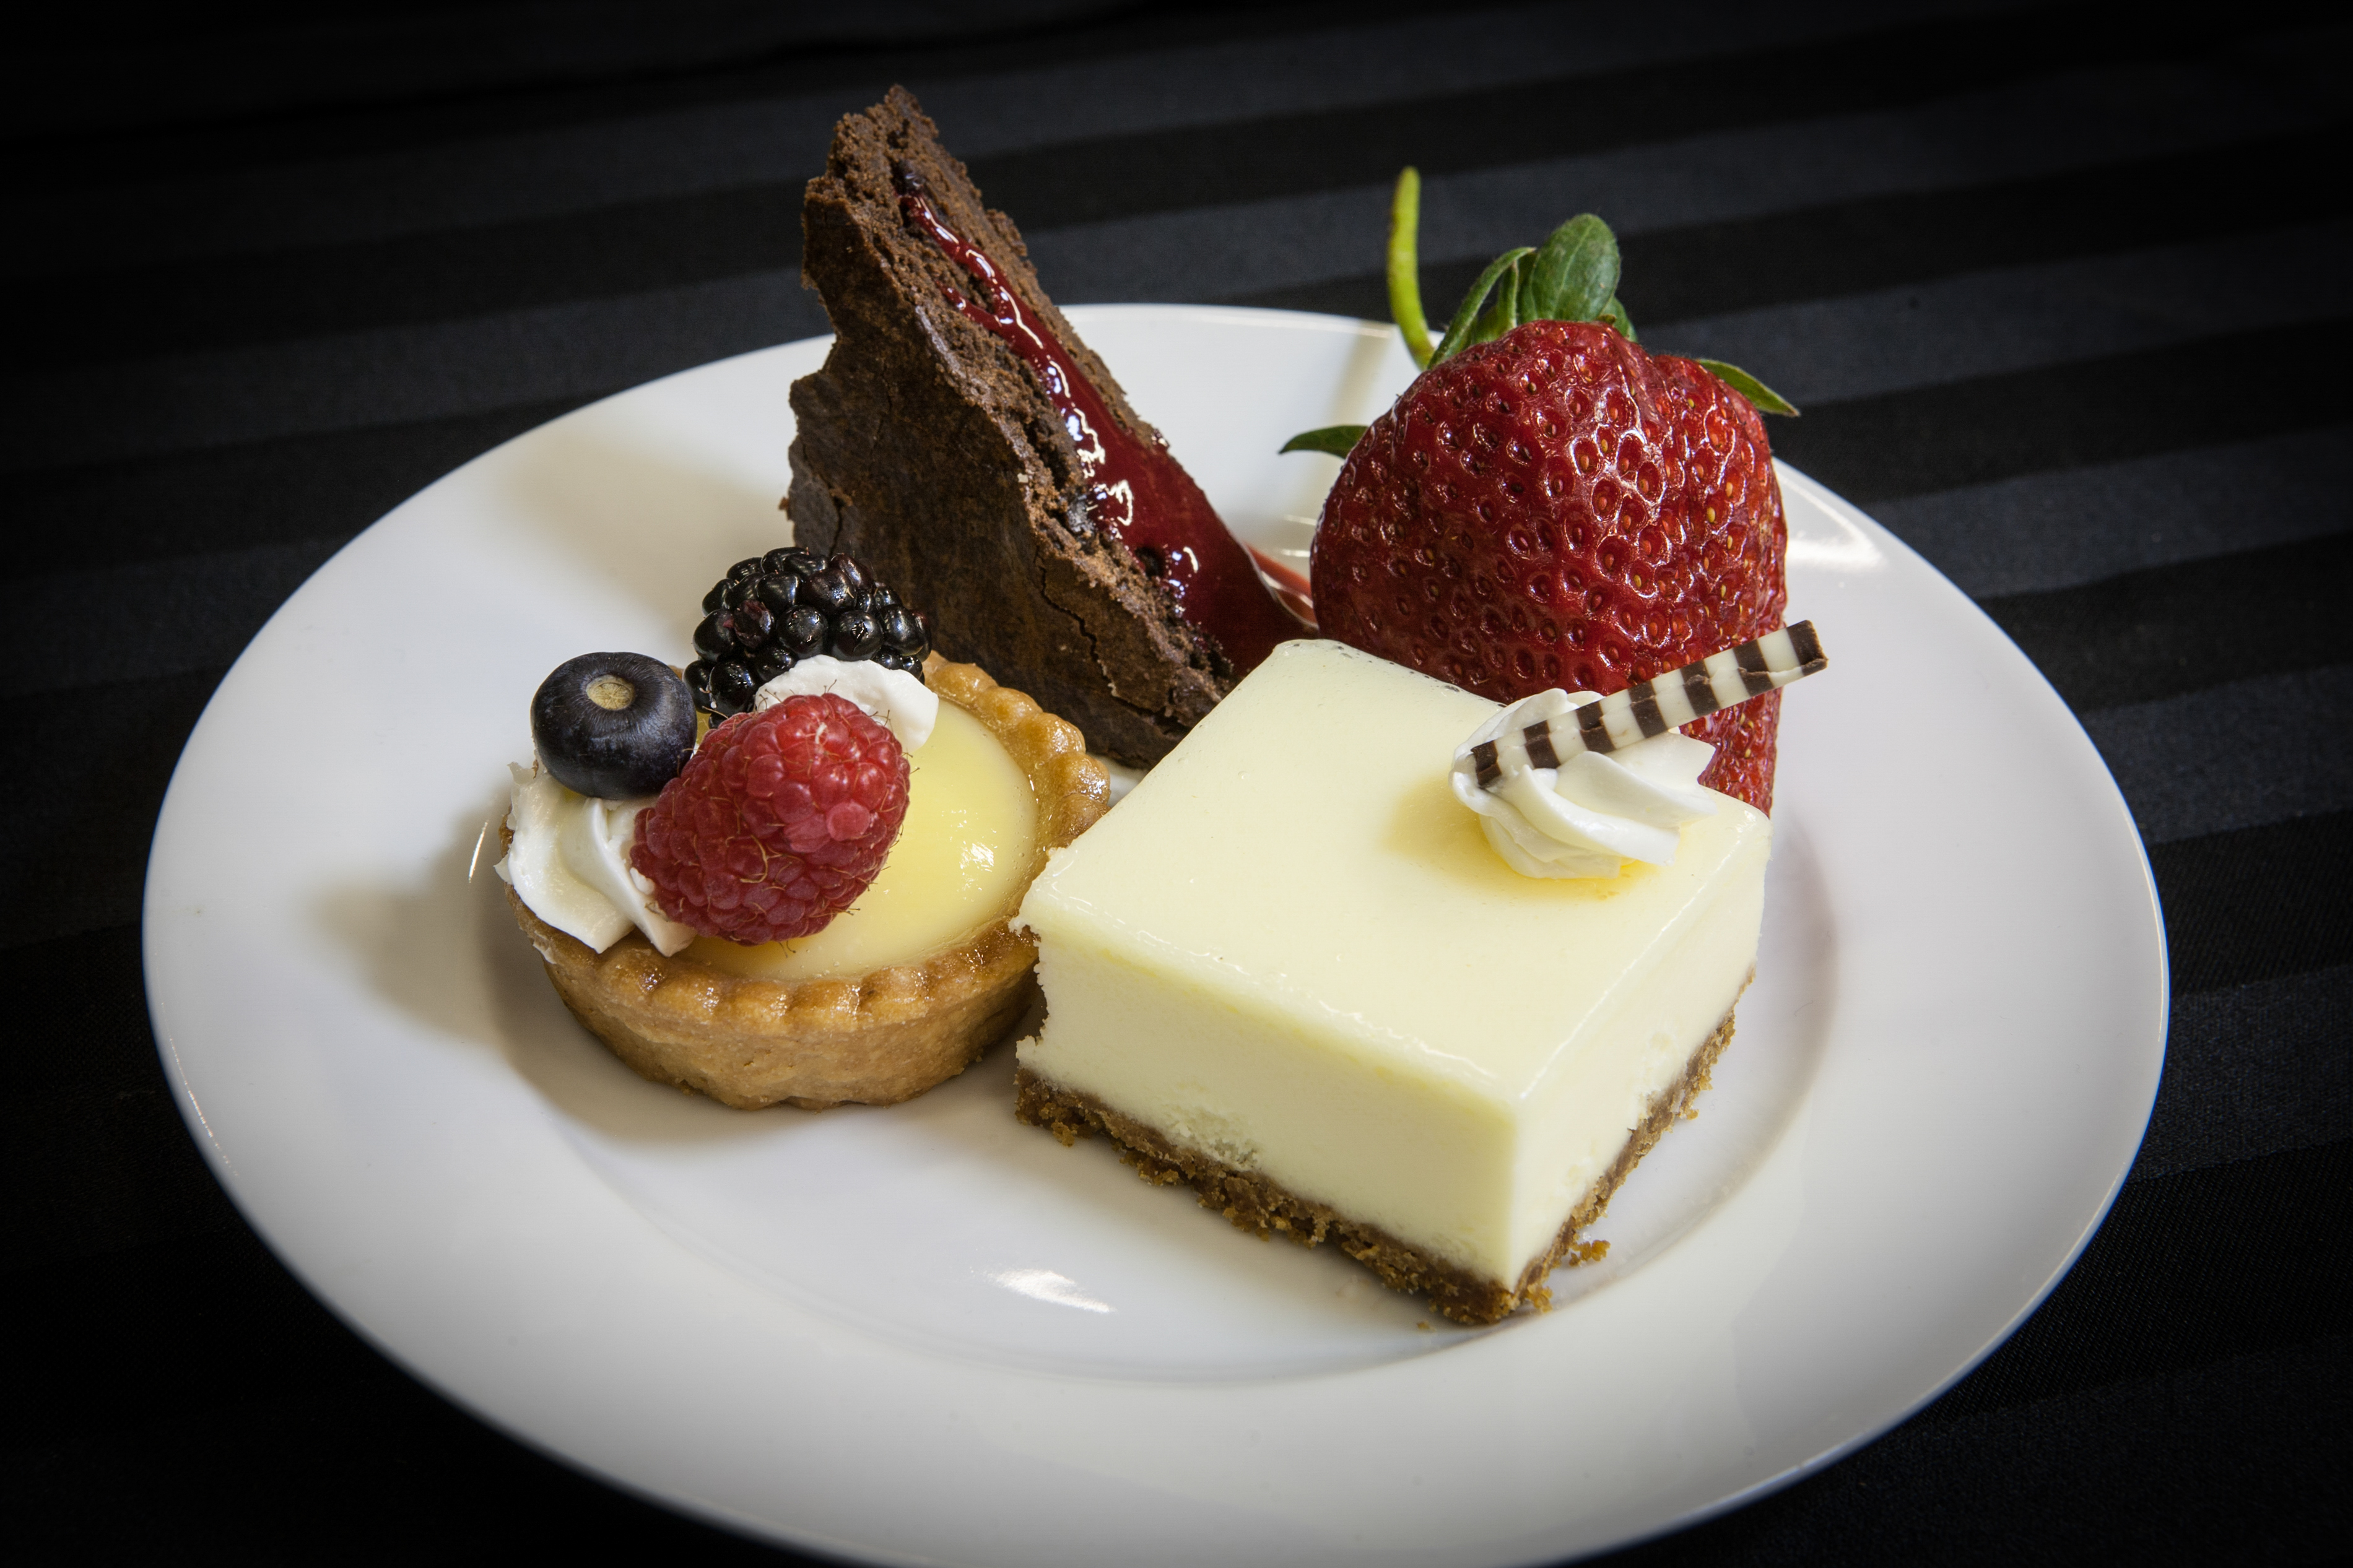 Carousel-Catering-Inc-Trio-of-Deserts-Cheese-Cake-Square-Lemon-Fruit-Tart-Cranberry-Pecan-Brownie